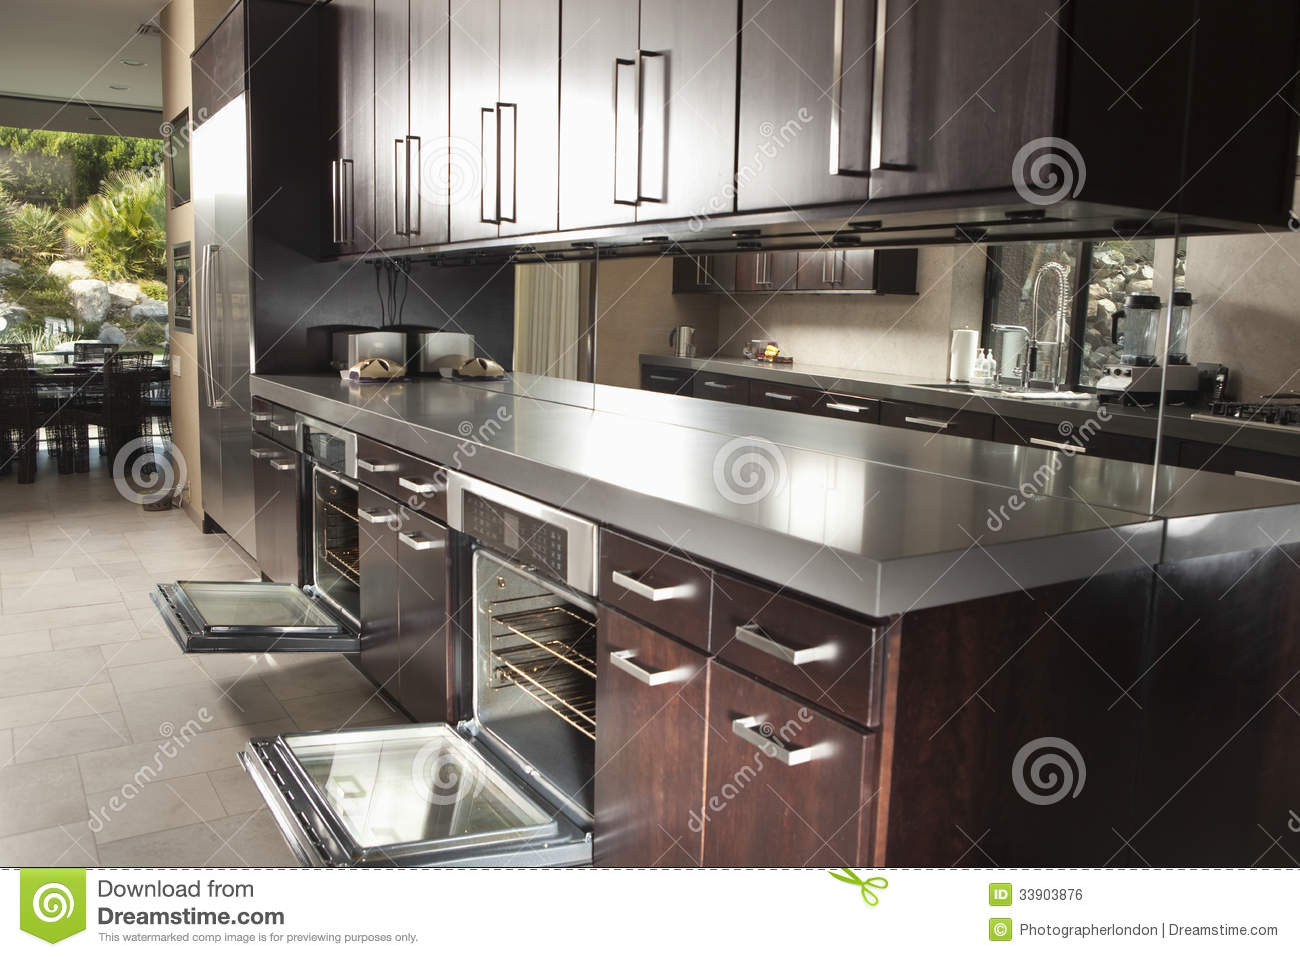 royalty free stock image commercial kitchen open oven cabinets interior image stock kitchen cabinets Commercial Kitchen With Open Oven And Cabinets